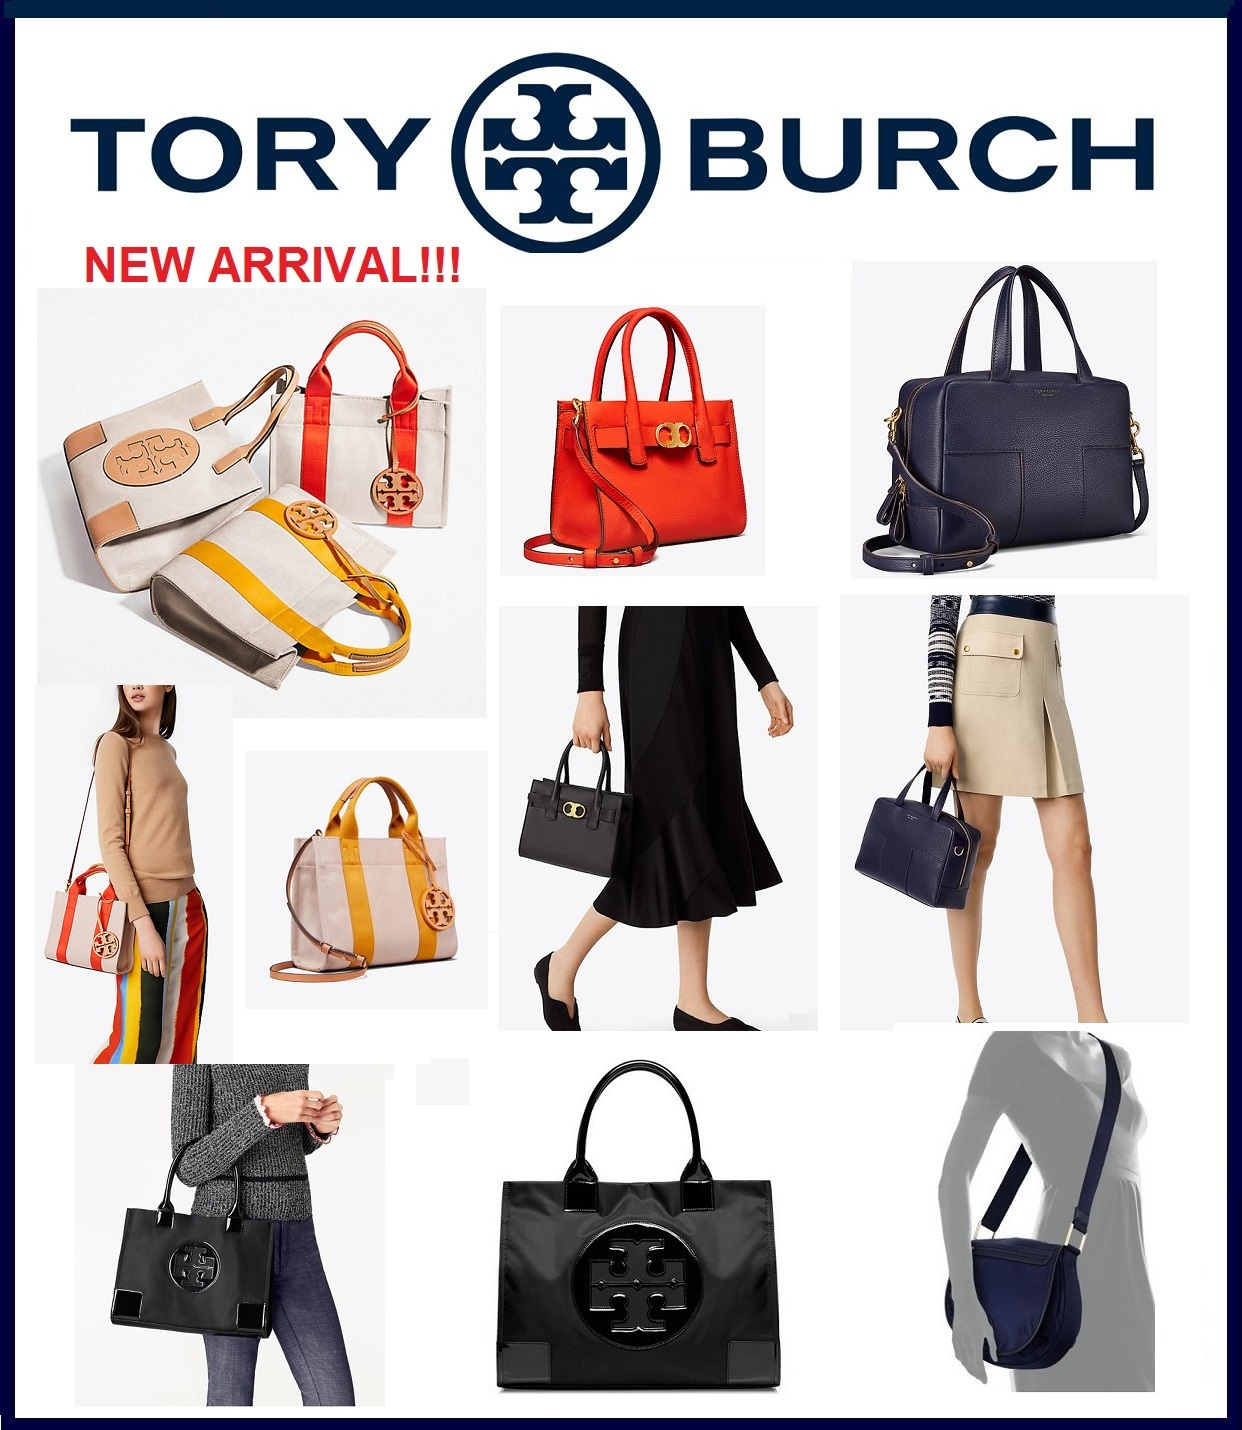 b3d6f3893 Show All Item Images. close. actual size. prev next. *SALE*-Tory Burch  Block-T Satchel Handbag Gemini Link Tote ...